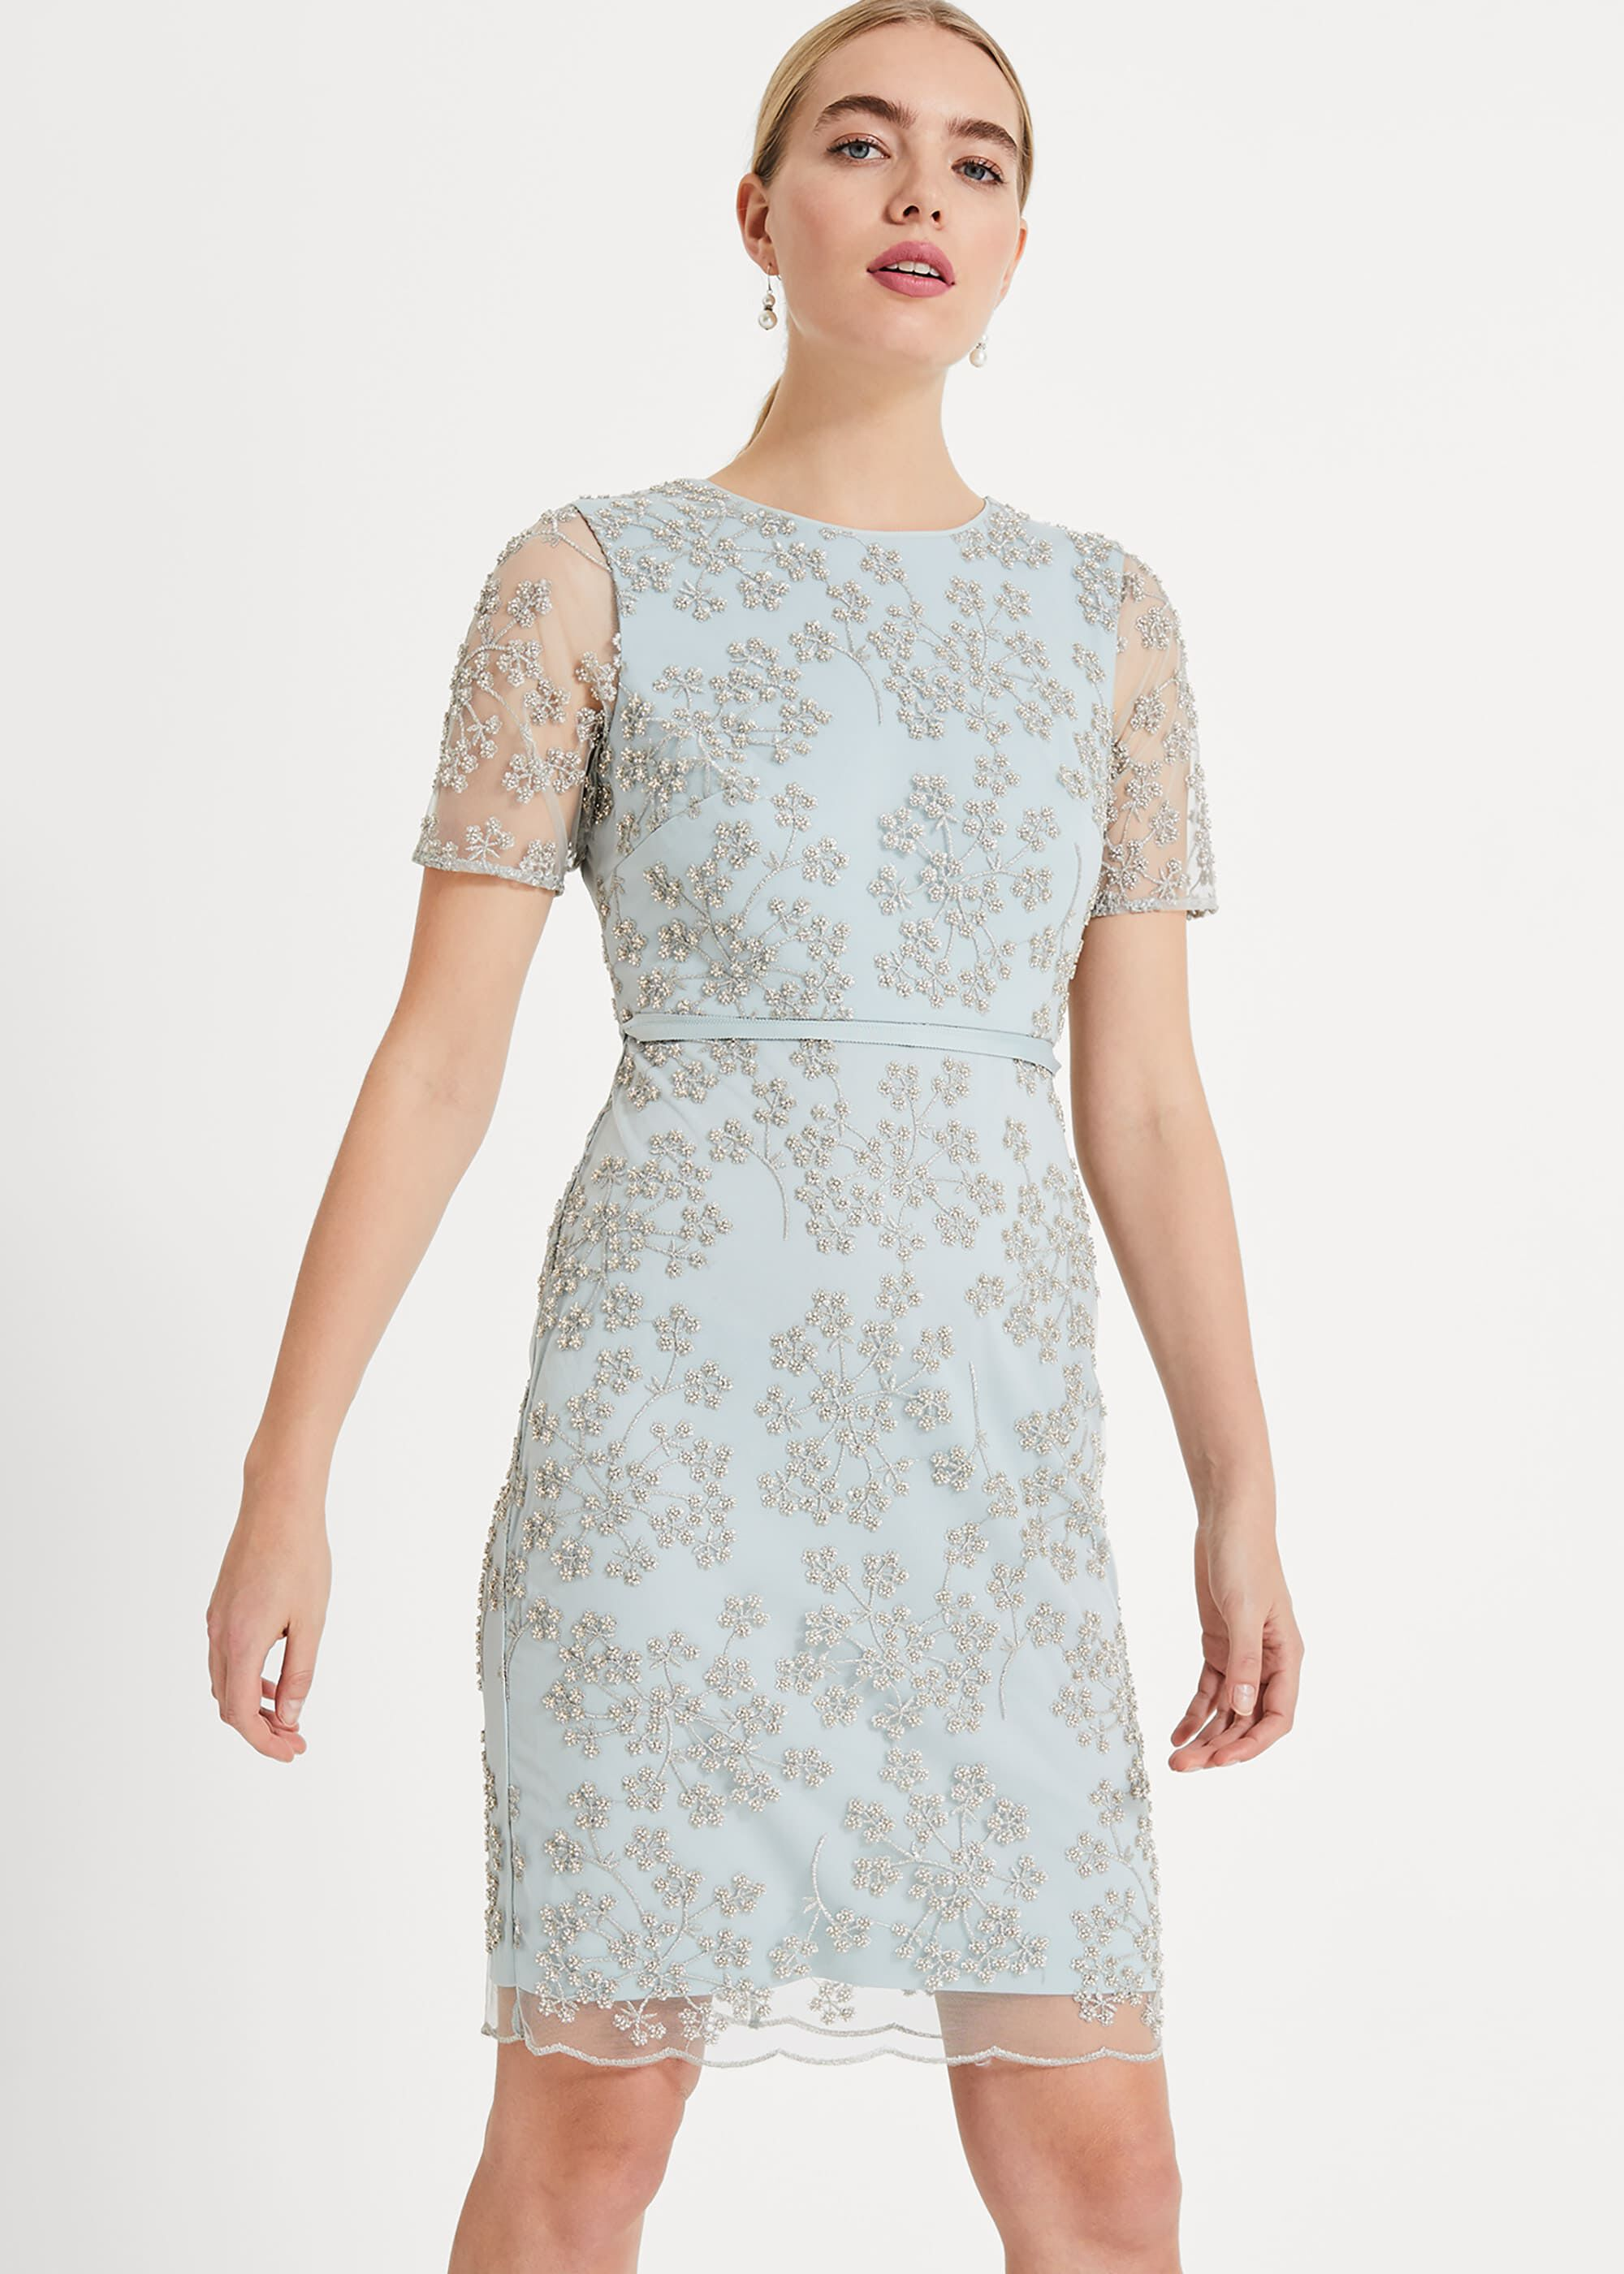 Phase Eight Anika Beaded Lace Dress, Neutral, Shift, Occasion Dress